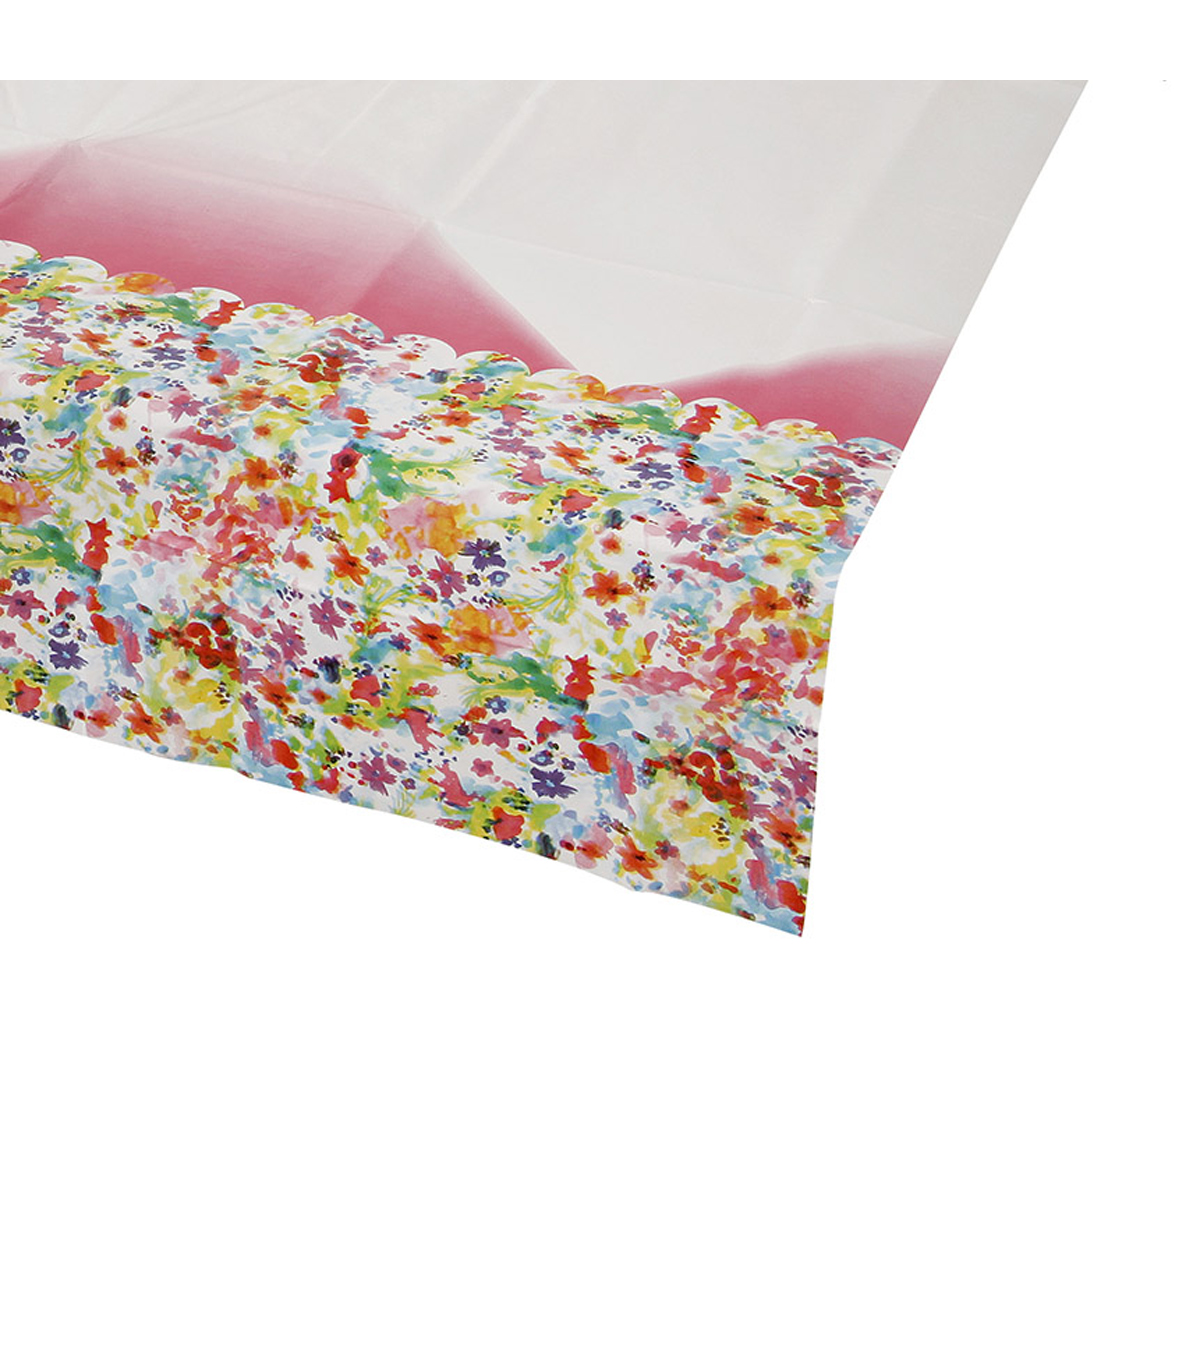 Floral Fiesta Table Cover